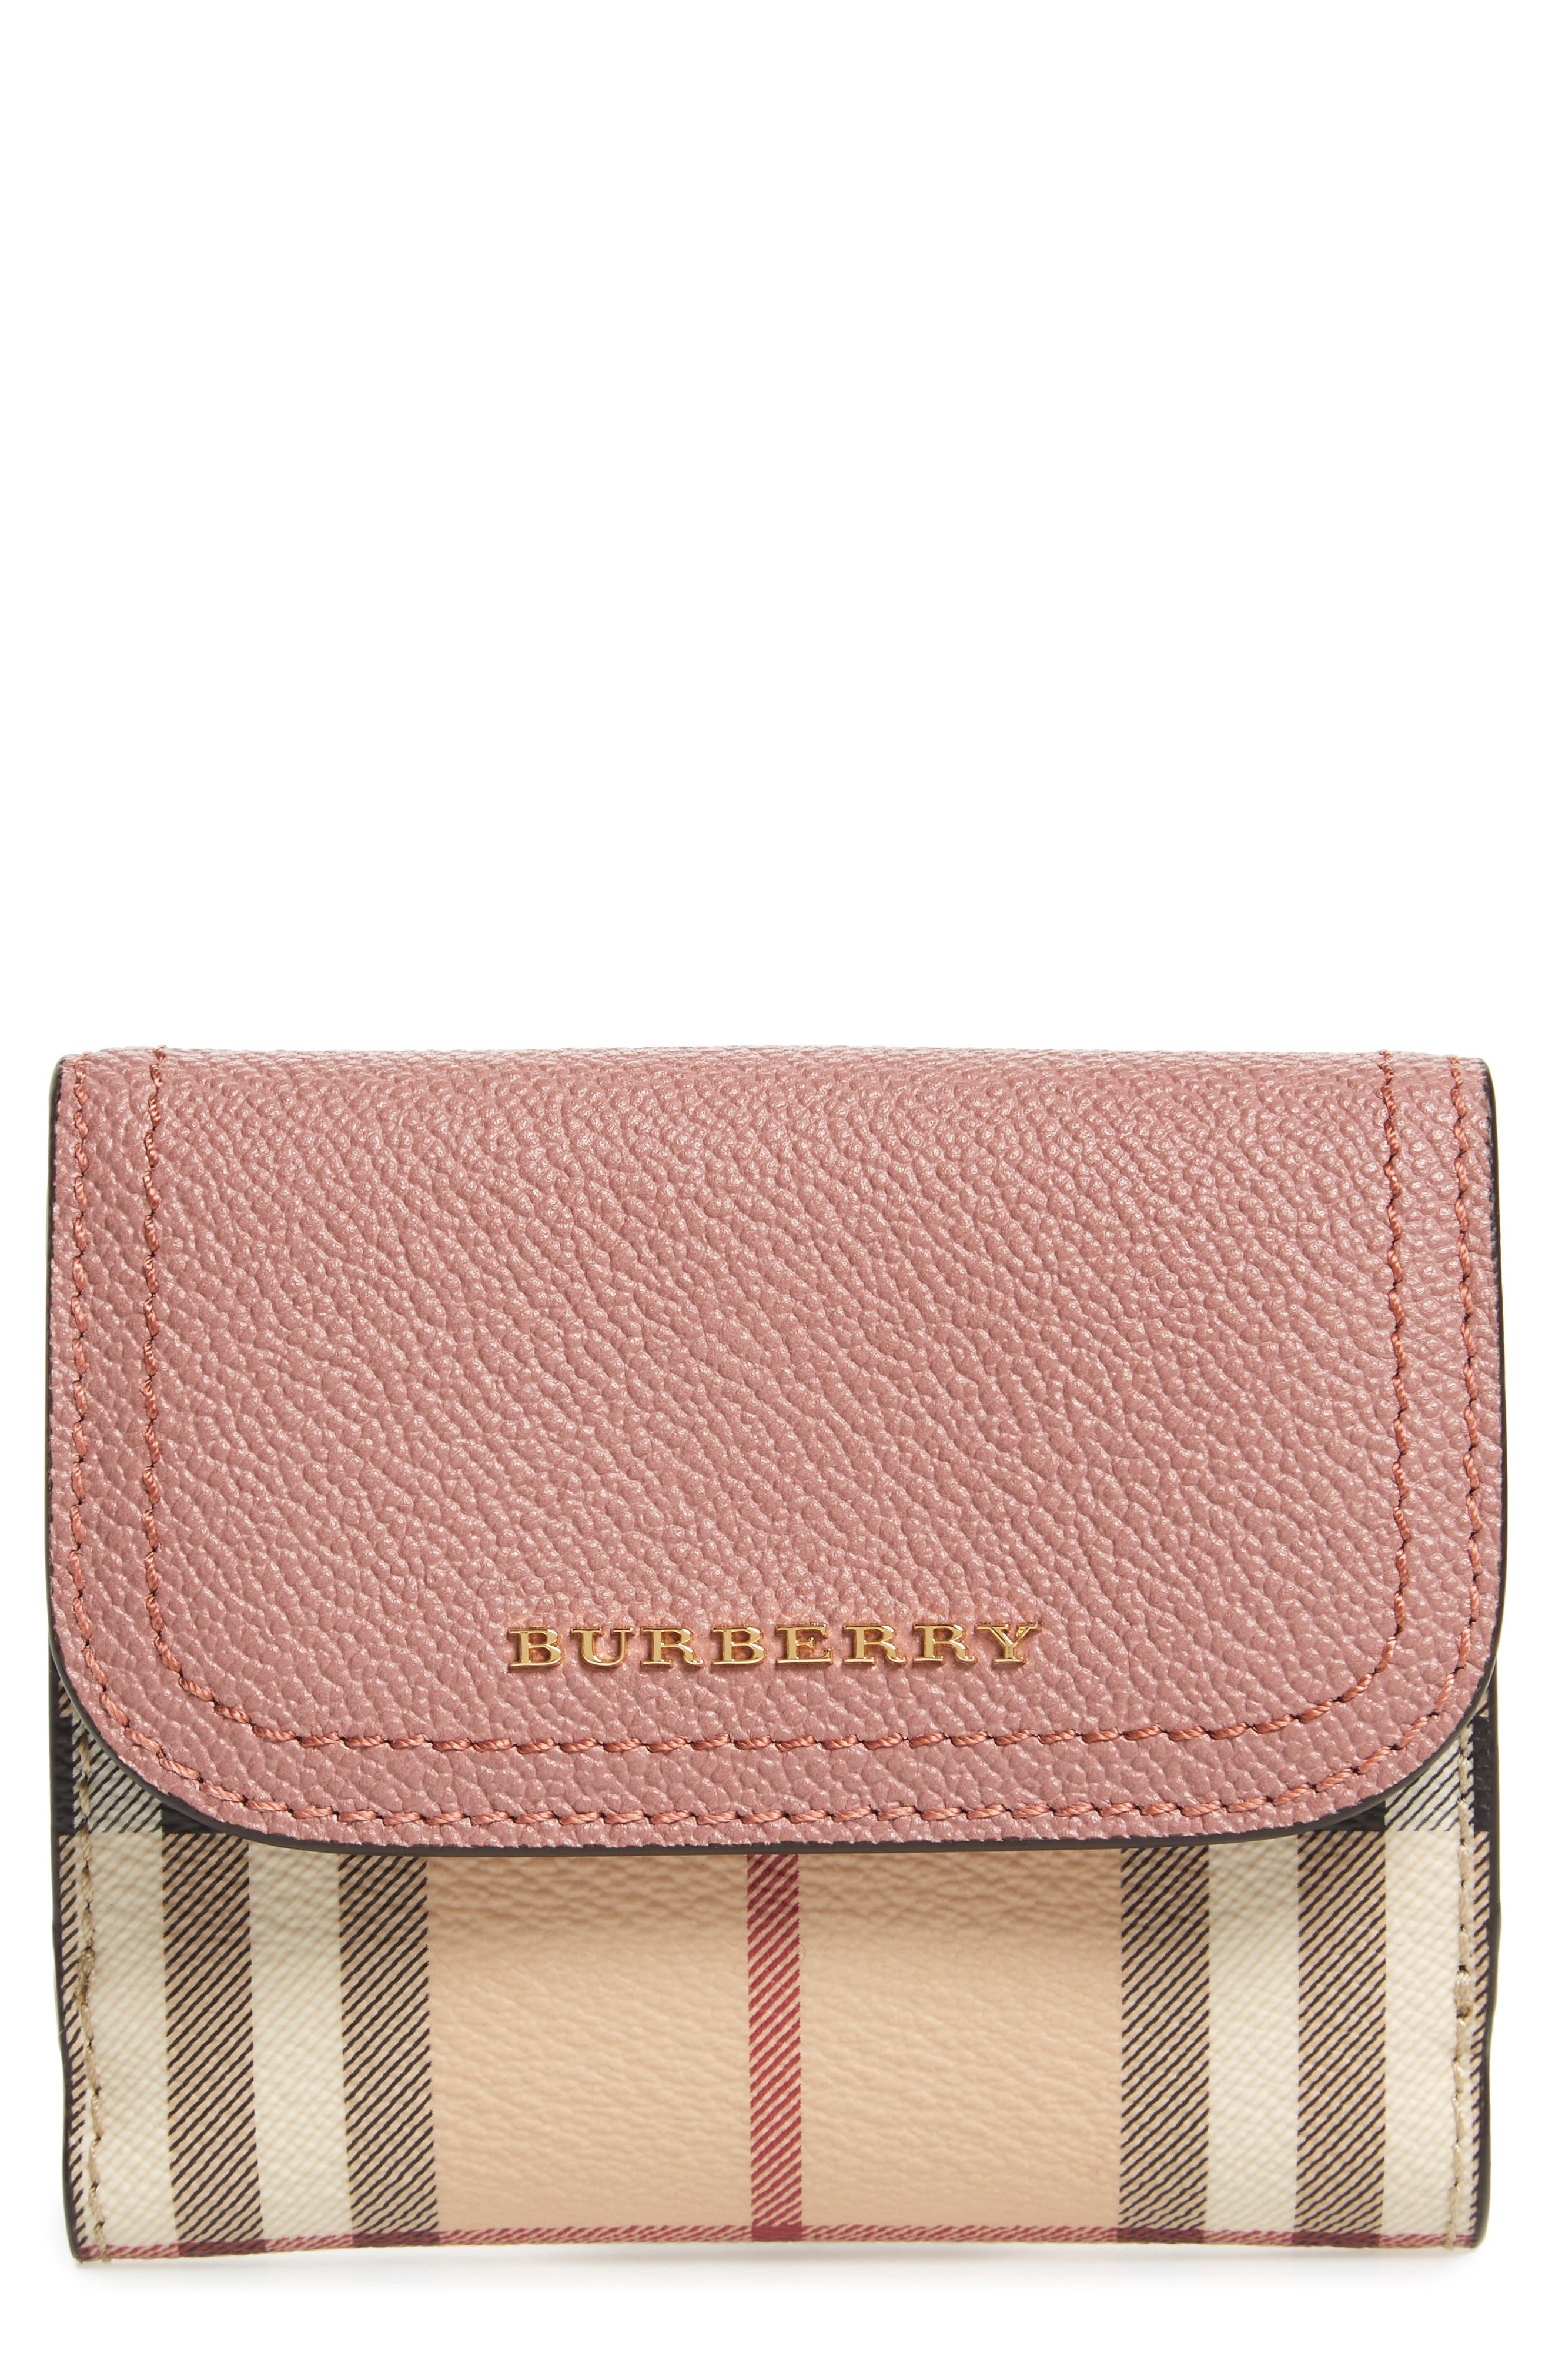 Burberry Luna French Haymarket Check Wallet